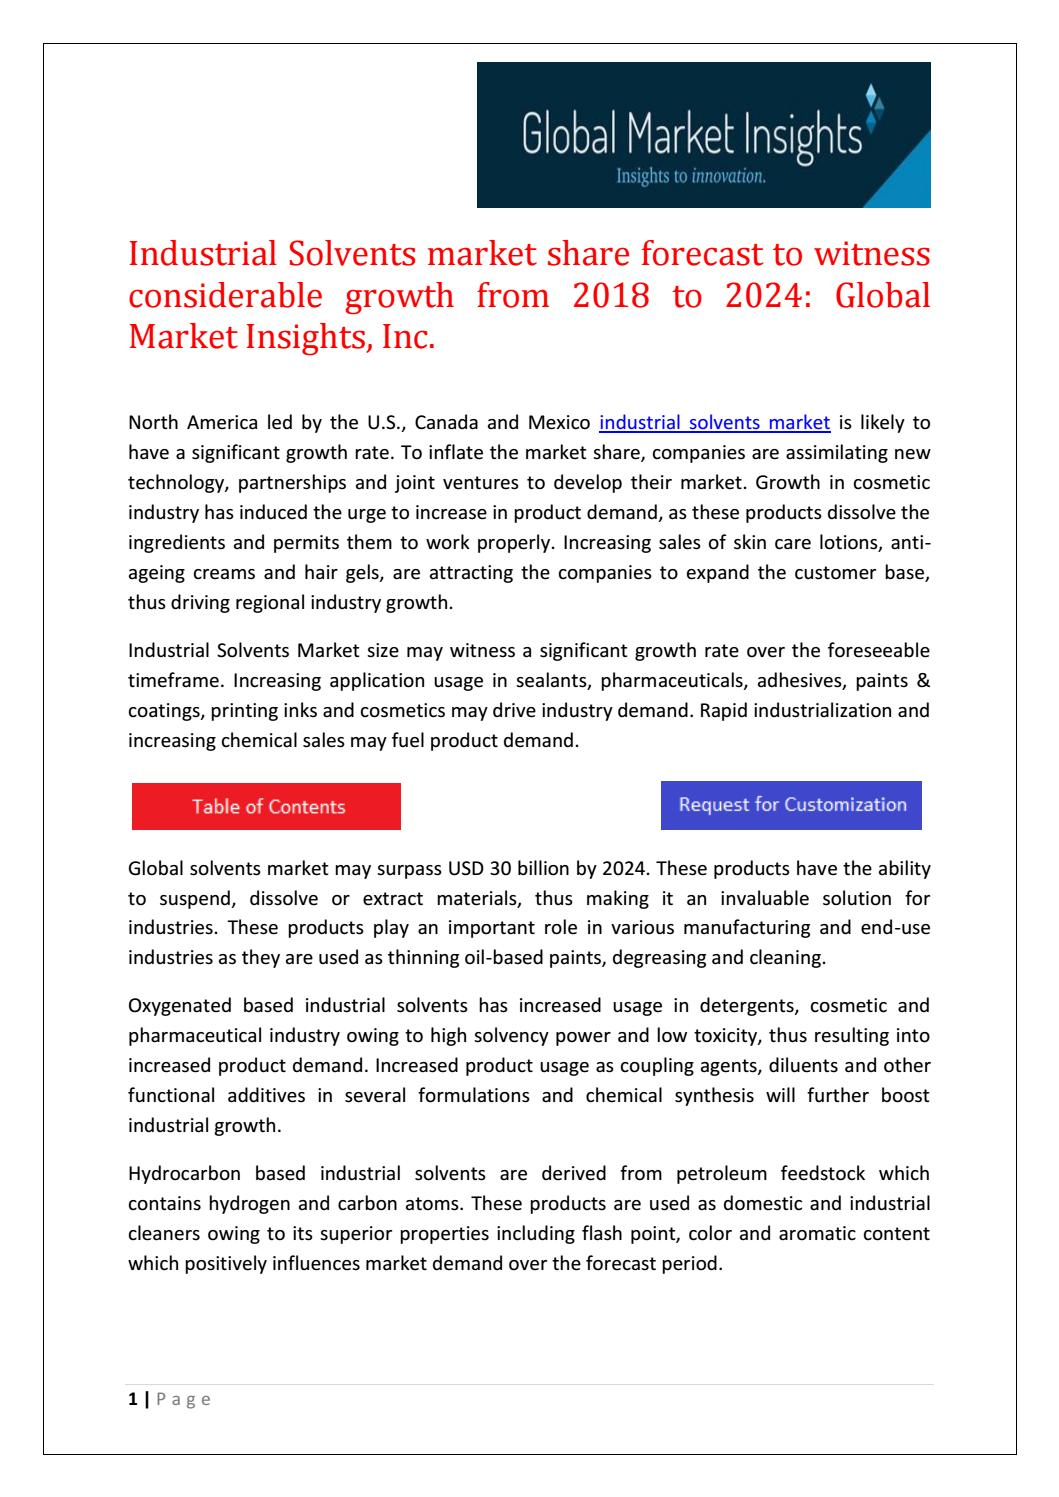 Industrial Solvents Market share forecast to witness